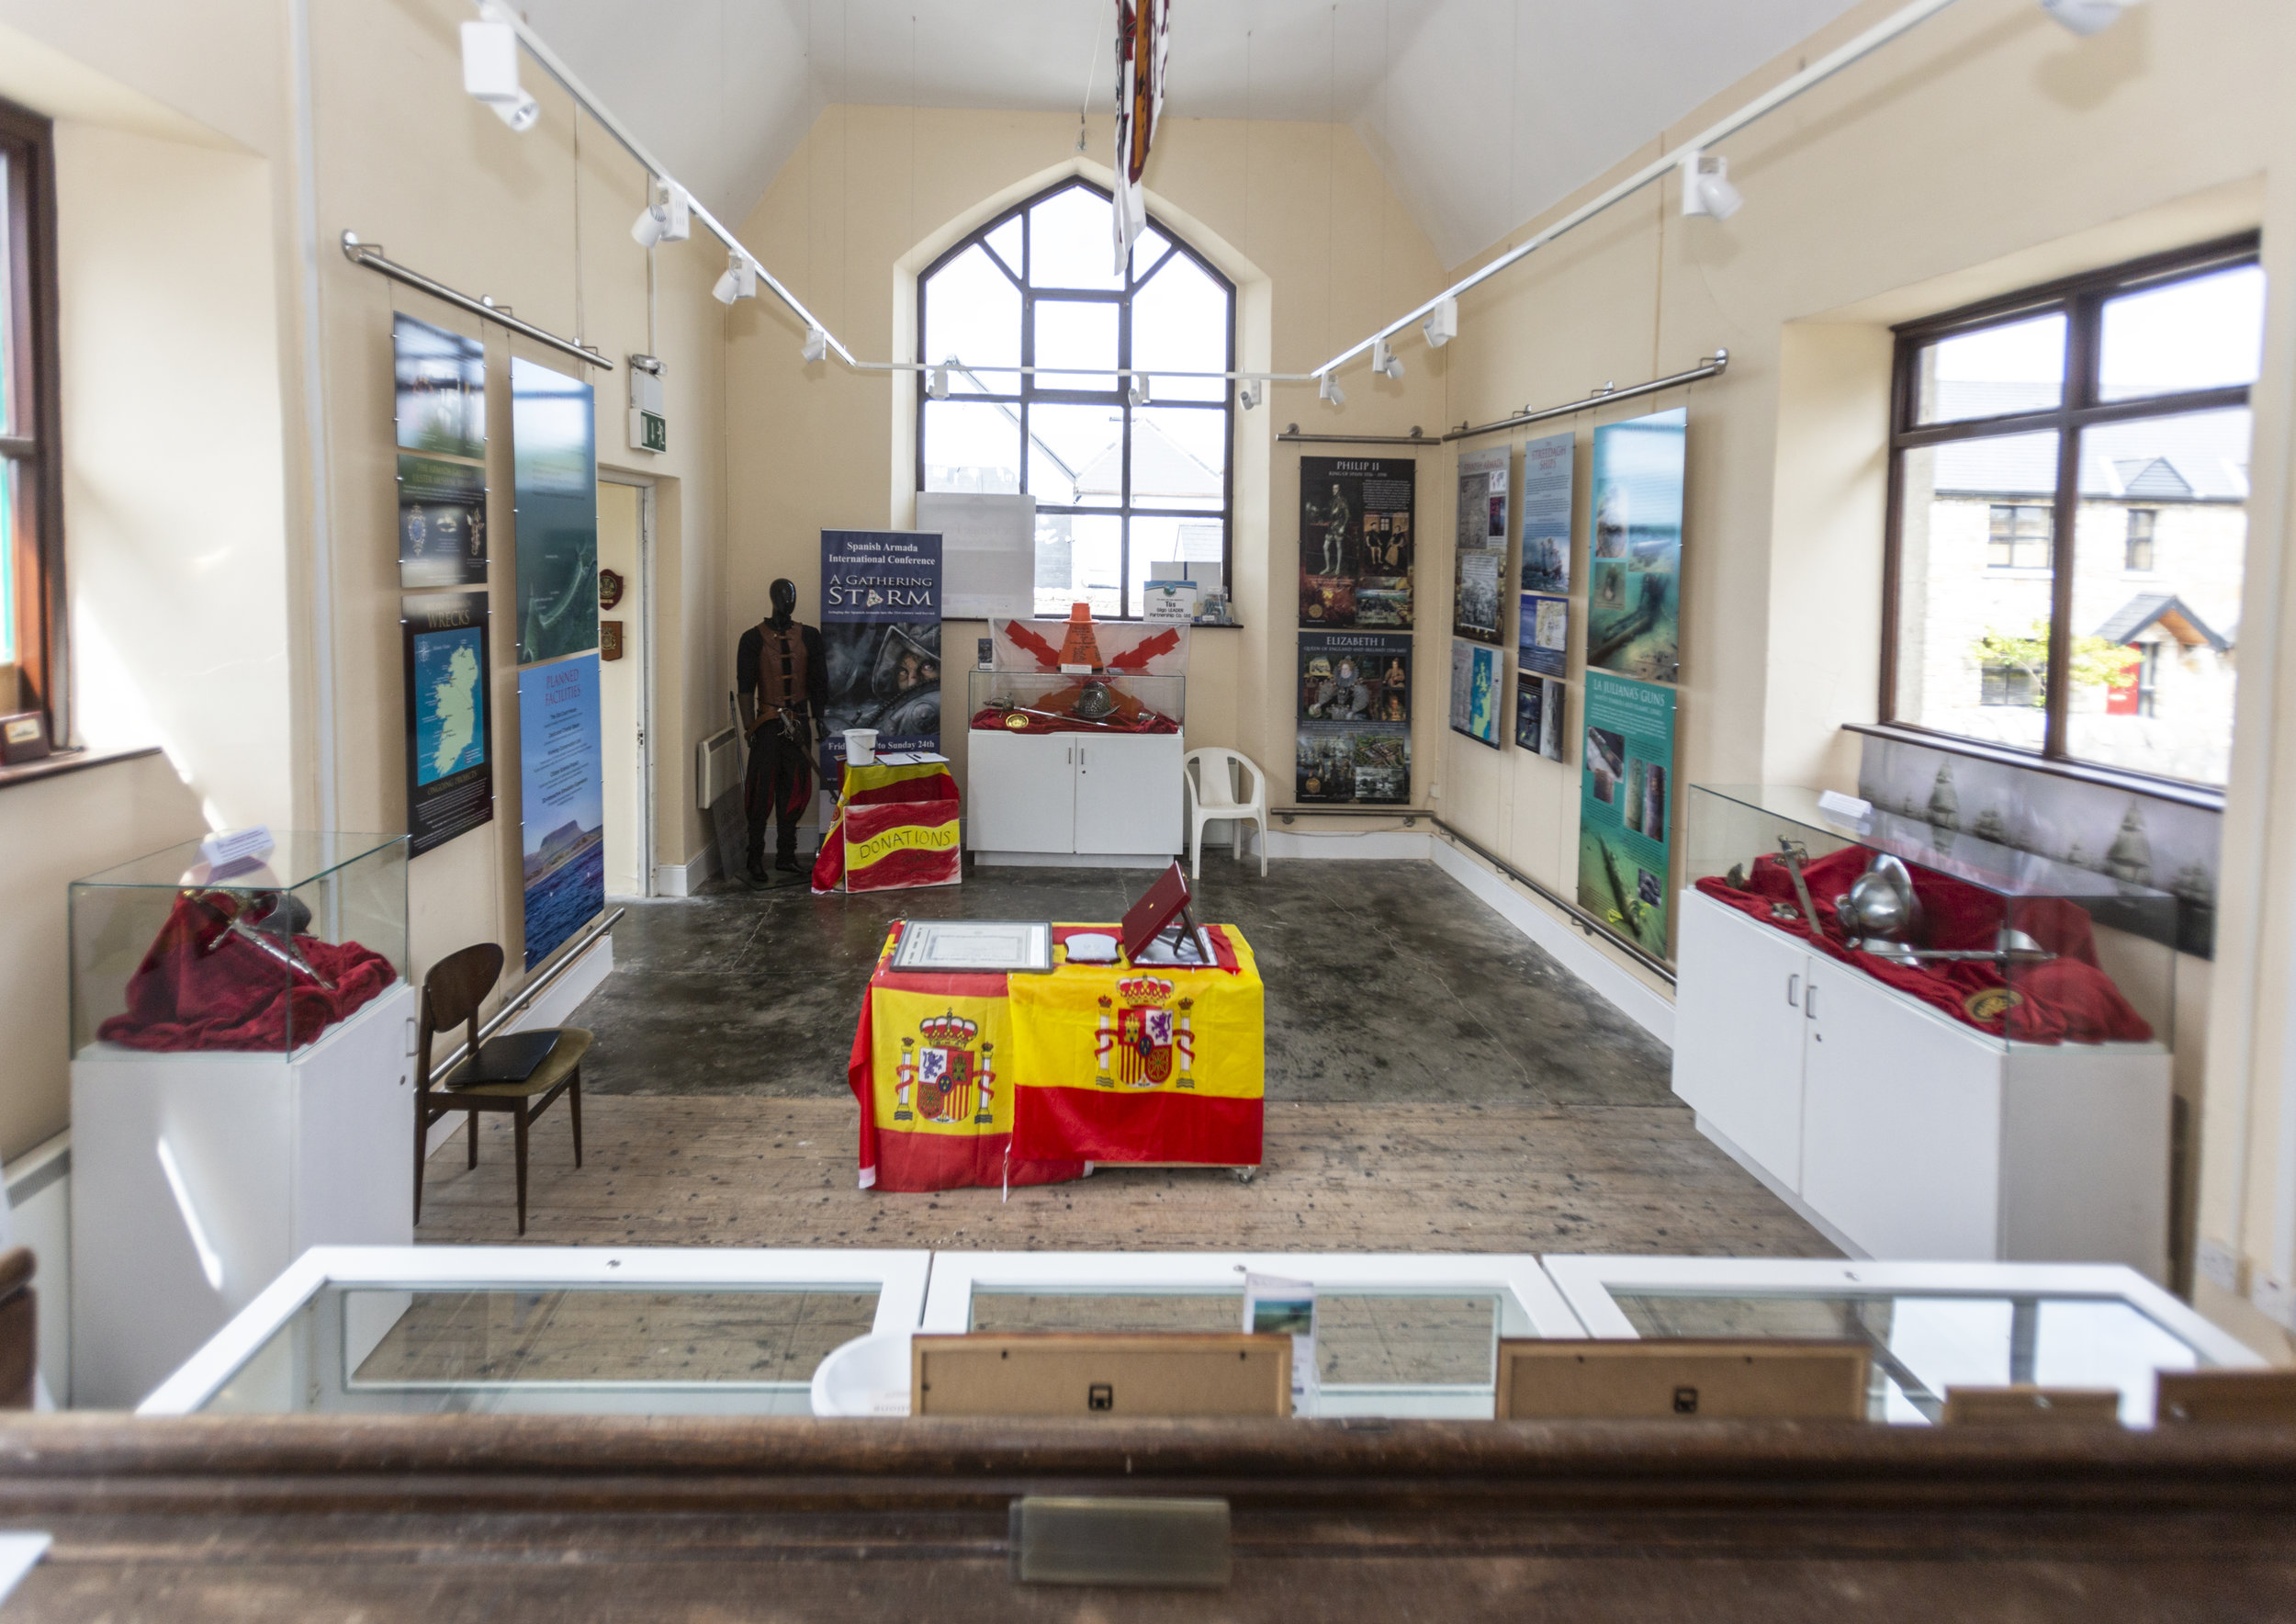 Spanish Armada Visitor Centre at the Old Courthouse in Grange, Co. Sligo © Donal Hackett